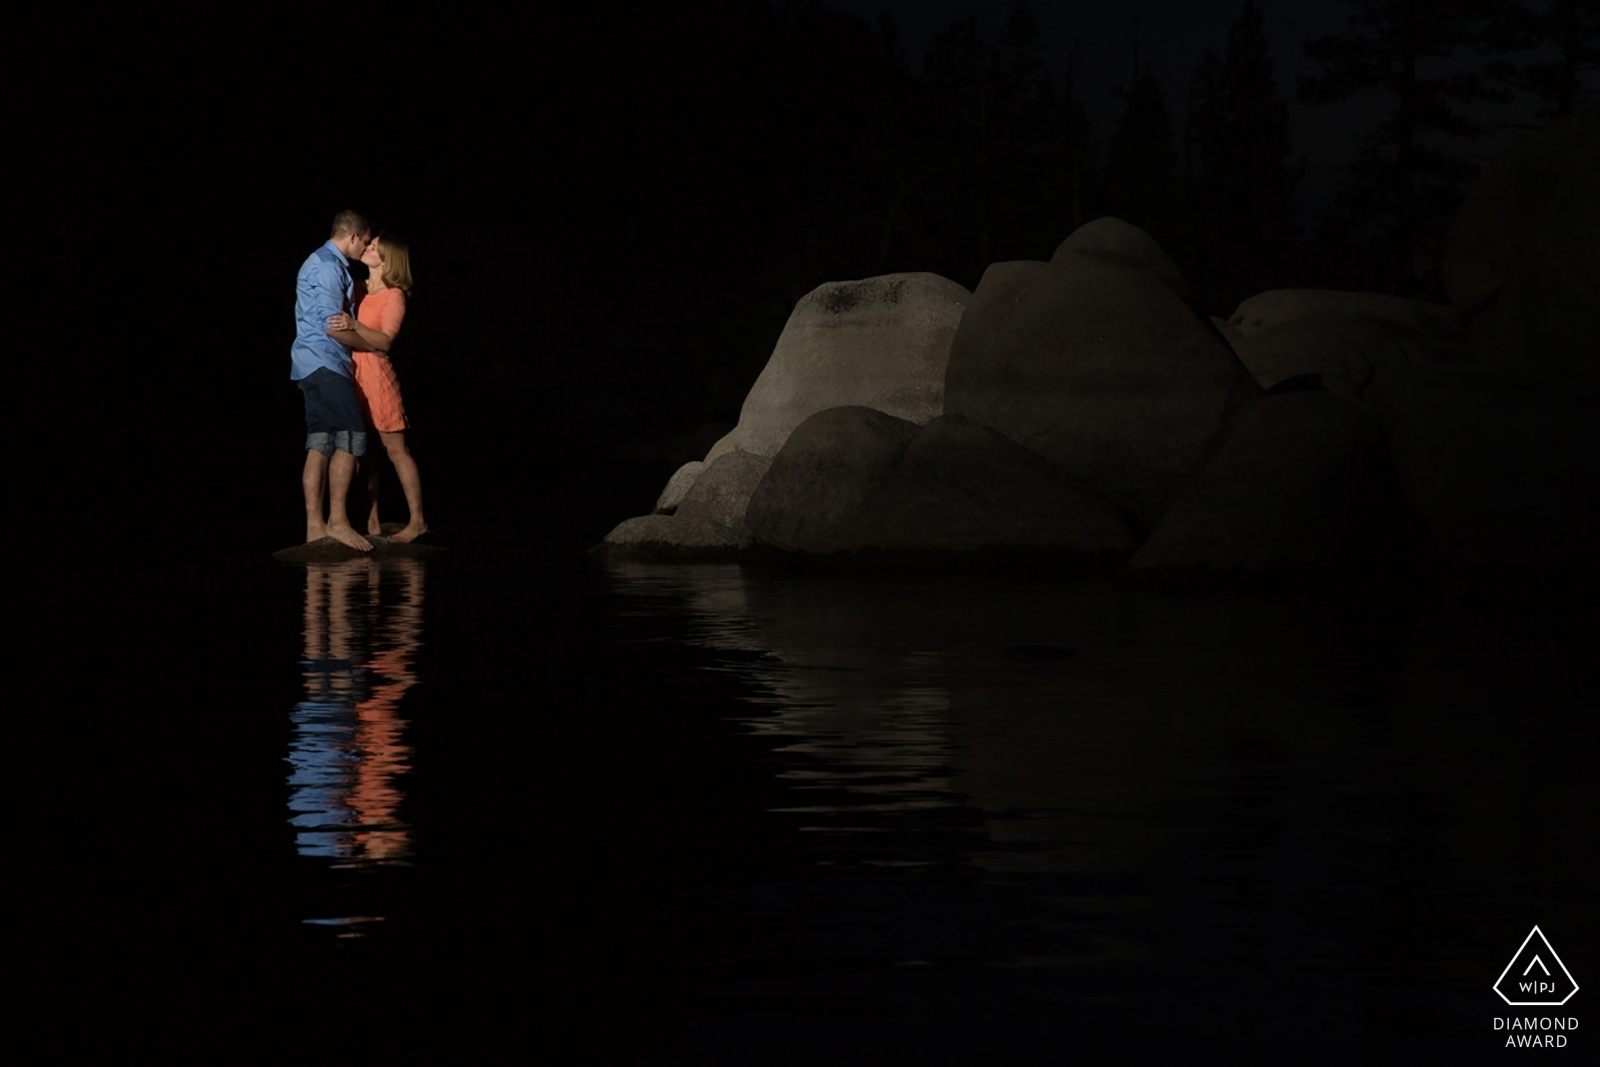 lake-tahoe-wedding-family-portrait-engagement-proposal-photographer-photography-best-award-winning-truckee-reno-south-north-city-west-kevin-sawyer-